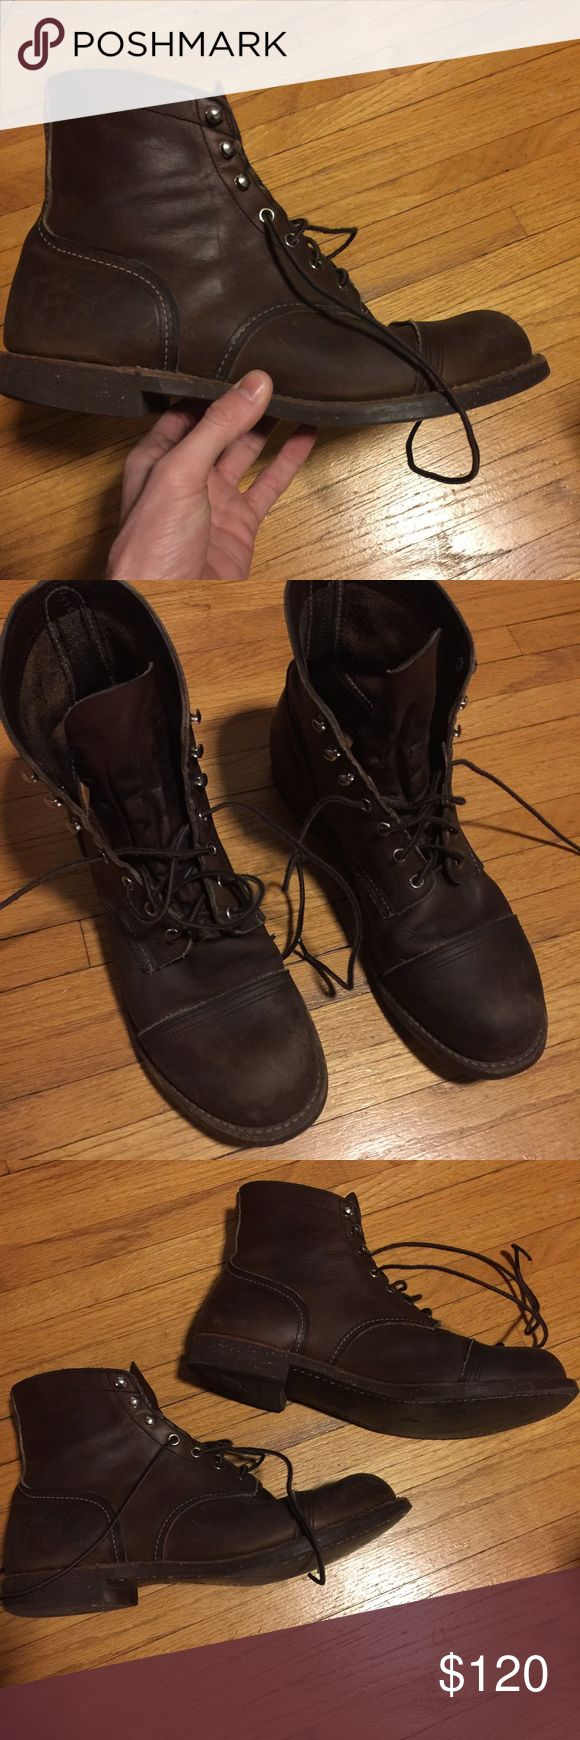 """Red Wing Iron Ranger Boots Lightly used Red Wing Iron Ranger boots.   Size 12, but they fit more like a 13.   These are factory seconds, so they sell for about $200 regular price. Whatever blemish exists on the boots, I don't know where it is. I've worn a few different pairs of factory seconds Red Wings for several years, and they last forever, just like the """"non-blemished"""" boots. Non-factory-seconds retail for over $300. Treated once with boot oil; the leather is darker and softer than a…"""